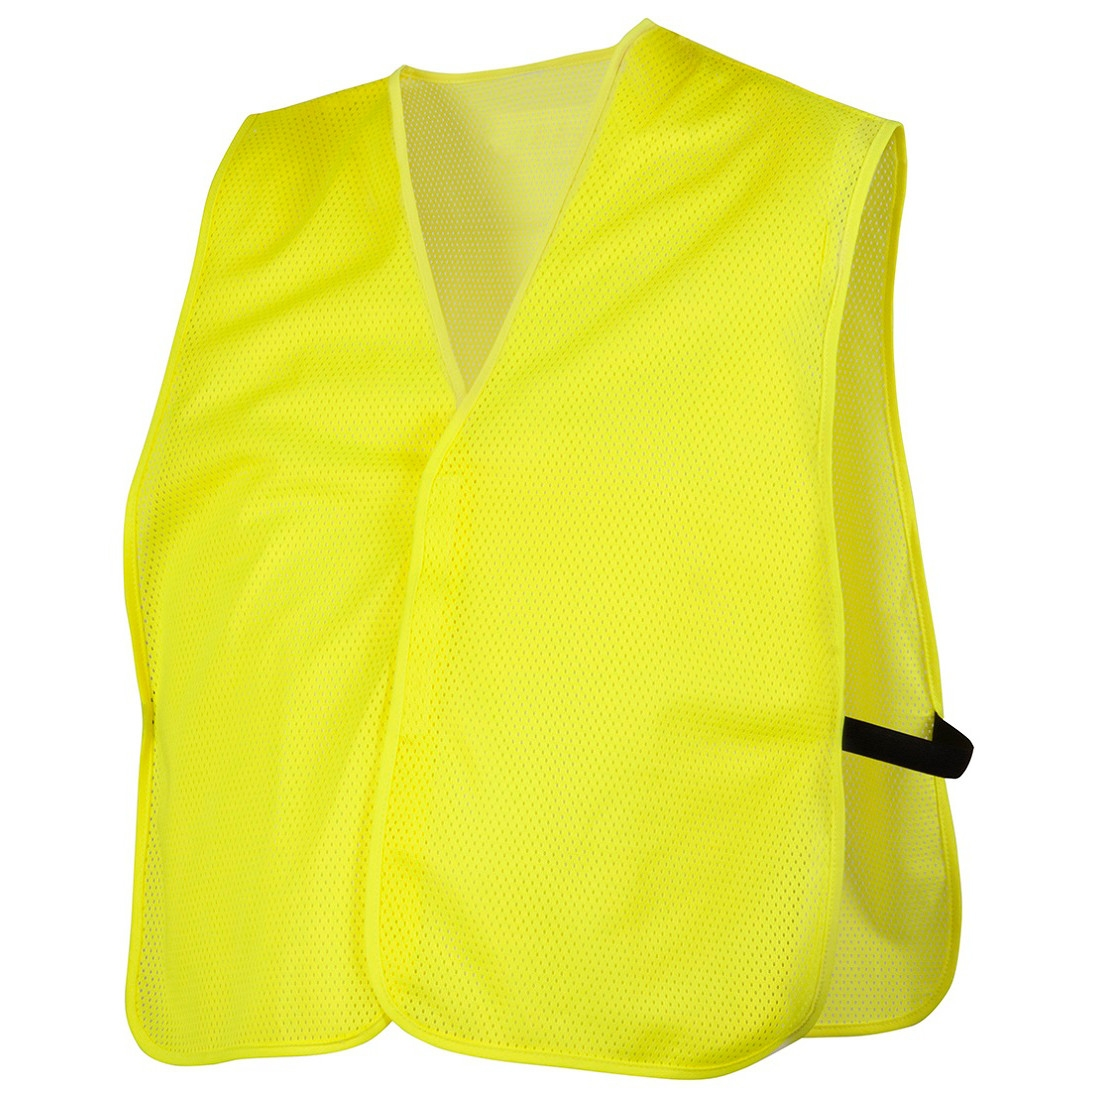 Pyramex Rv110ns Non Ansi Reflective Safety Vest Yellow Lime Fullsource Com